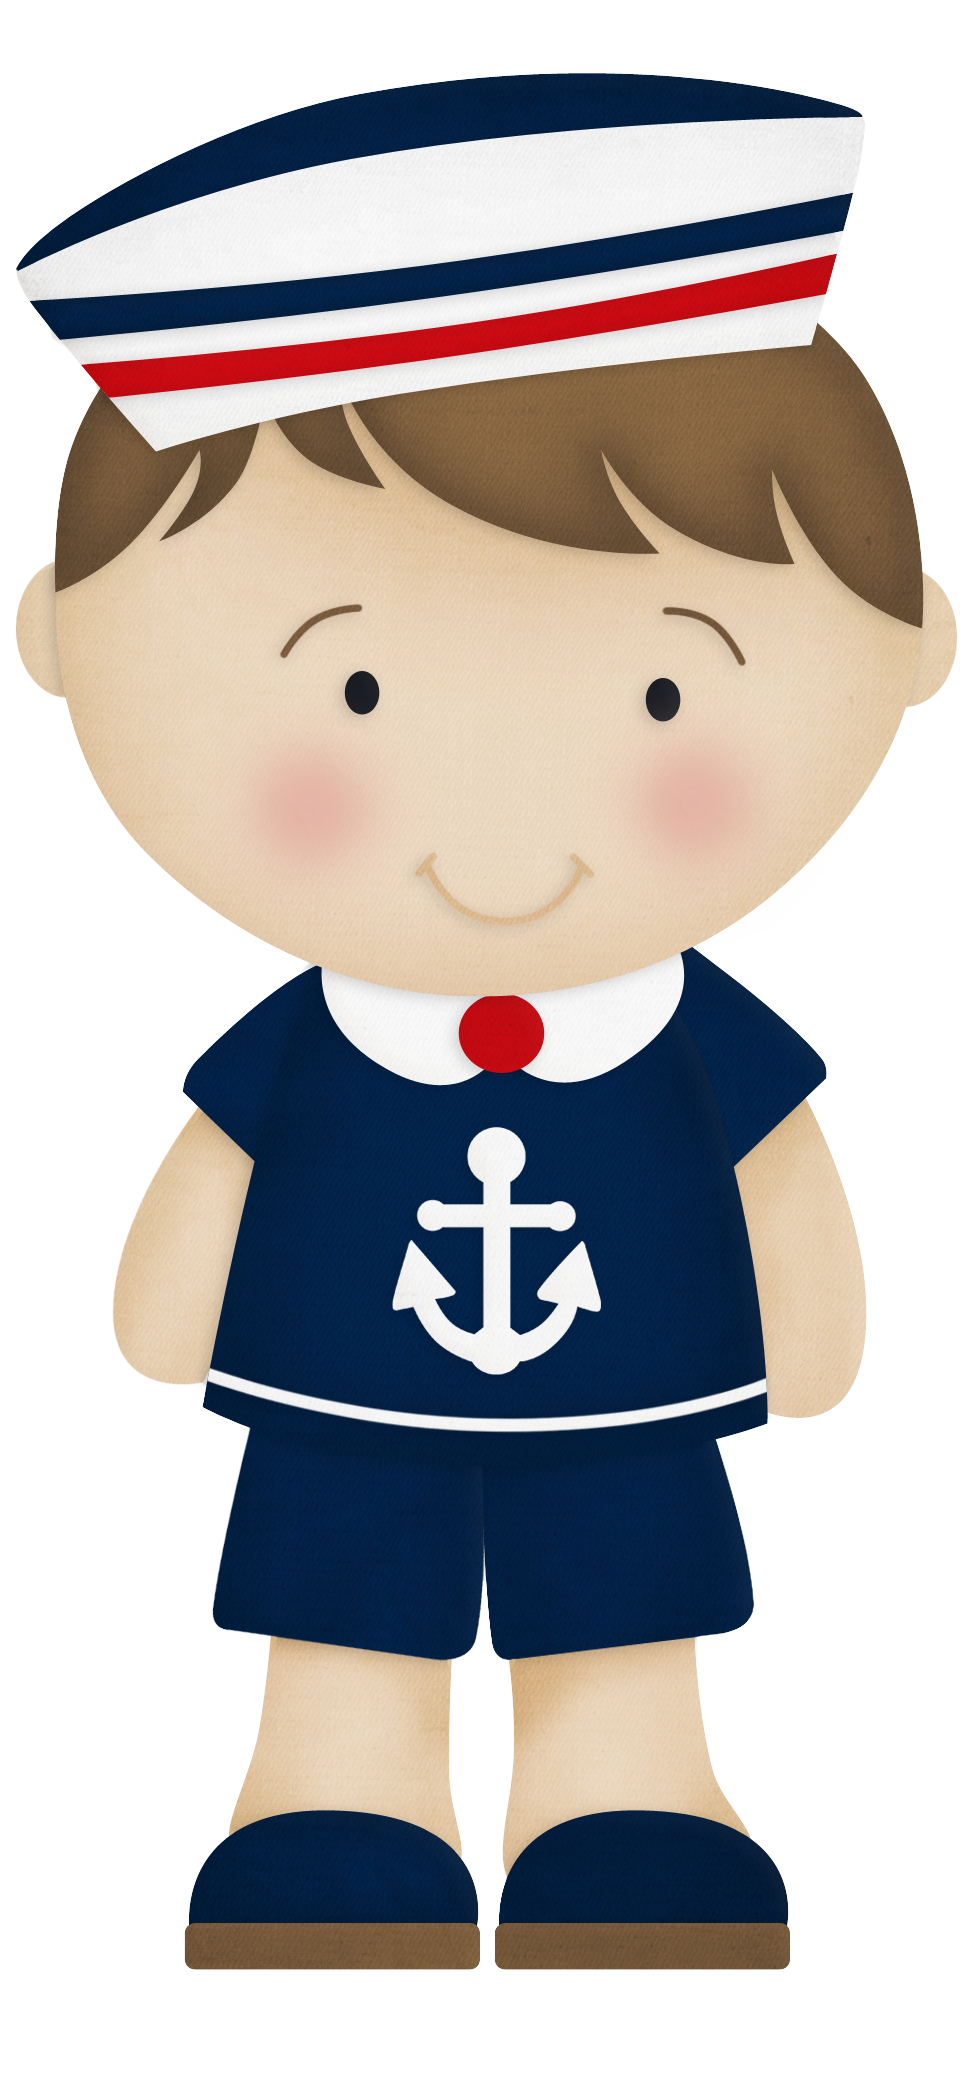 Number 1 clipart nautical. Pin by elitabrahmane on